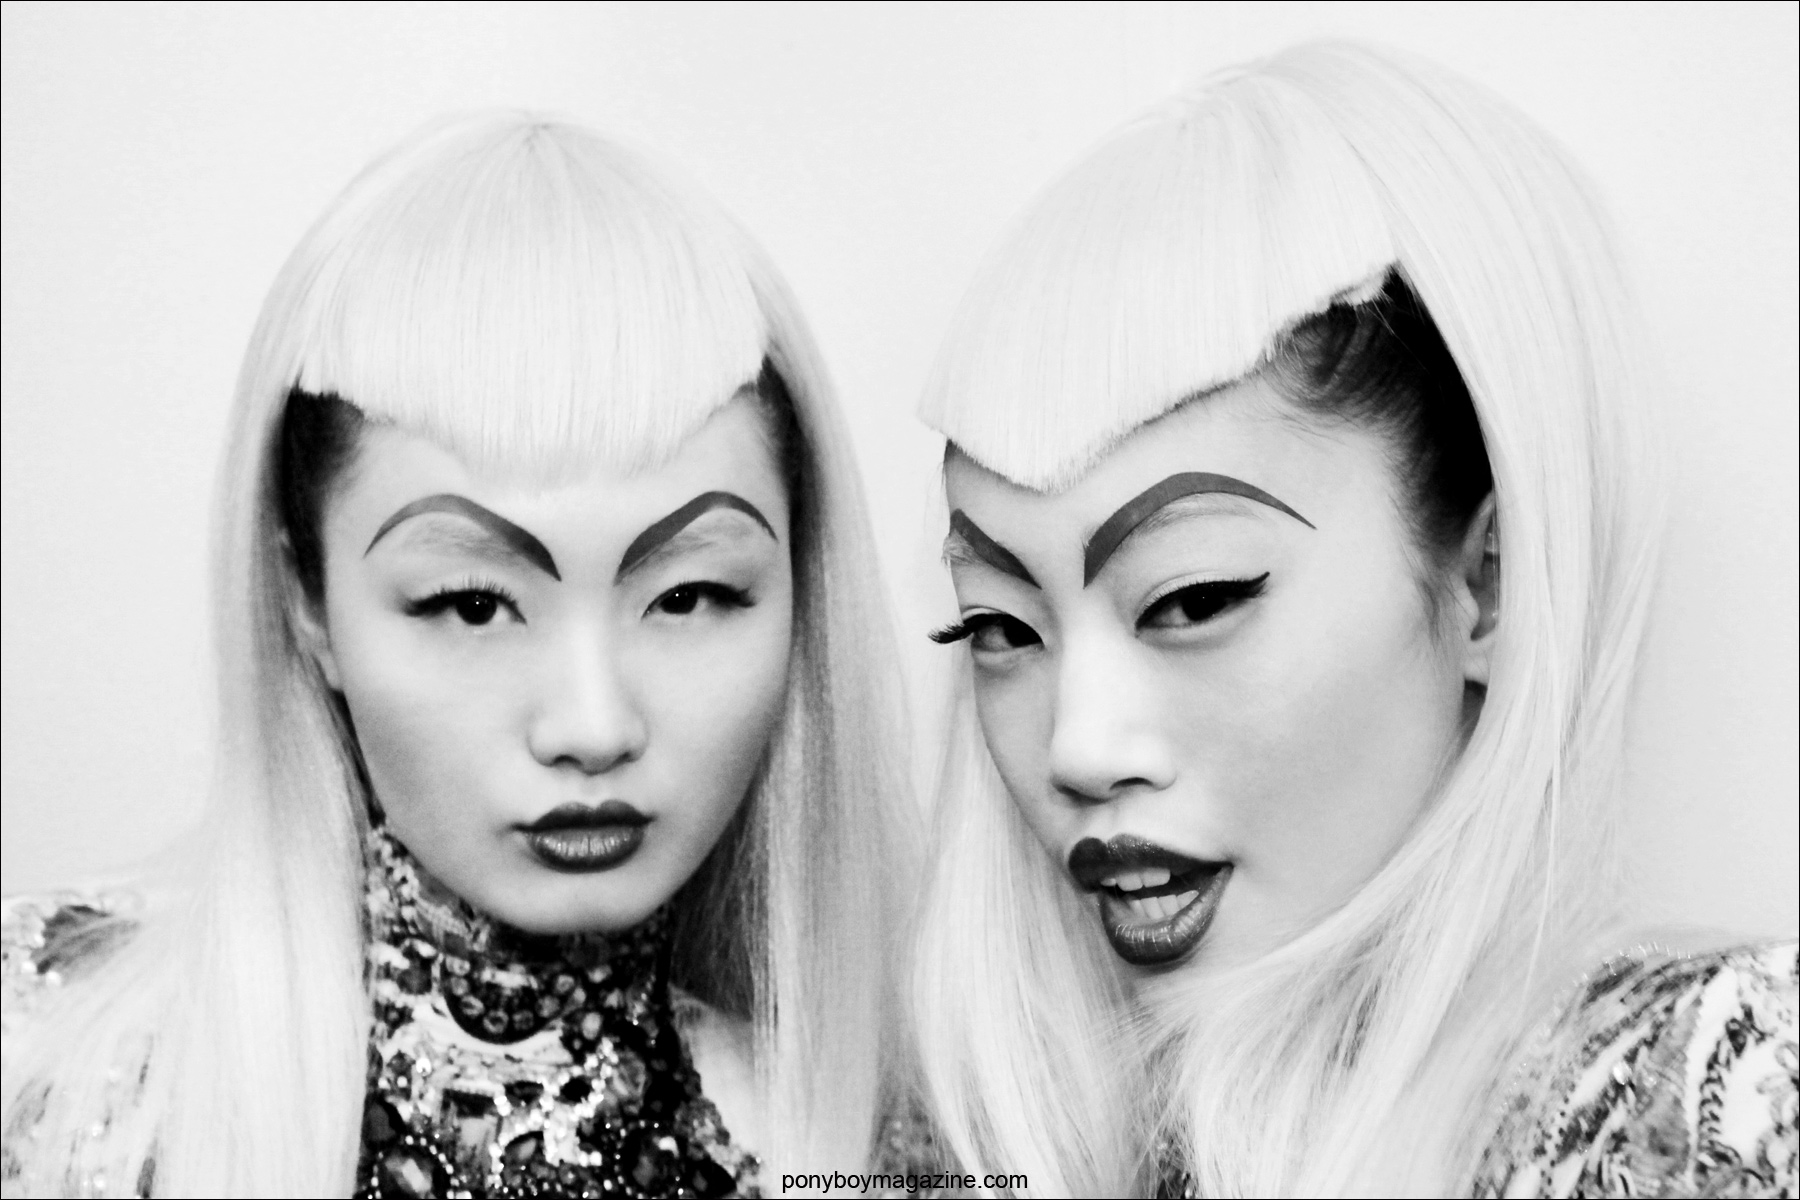 Beautiful Asian models, backstage at The Blonds A/W 2014 show. Photograph for Ponyboy Magazine by Alexander Thompson.